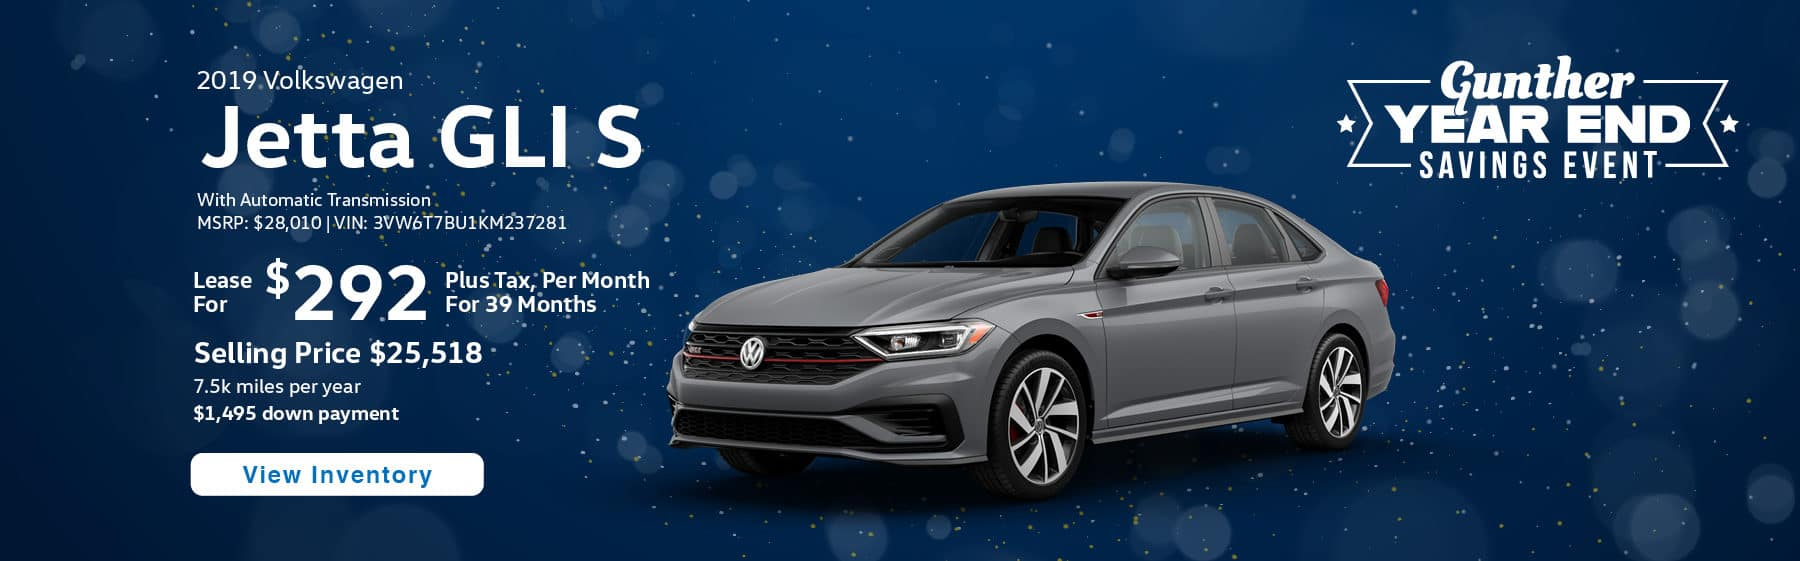 Lease the 2019 Jetta GLI S for $292 per month, plus tax for 39 months.